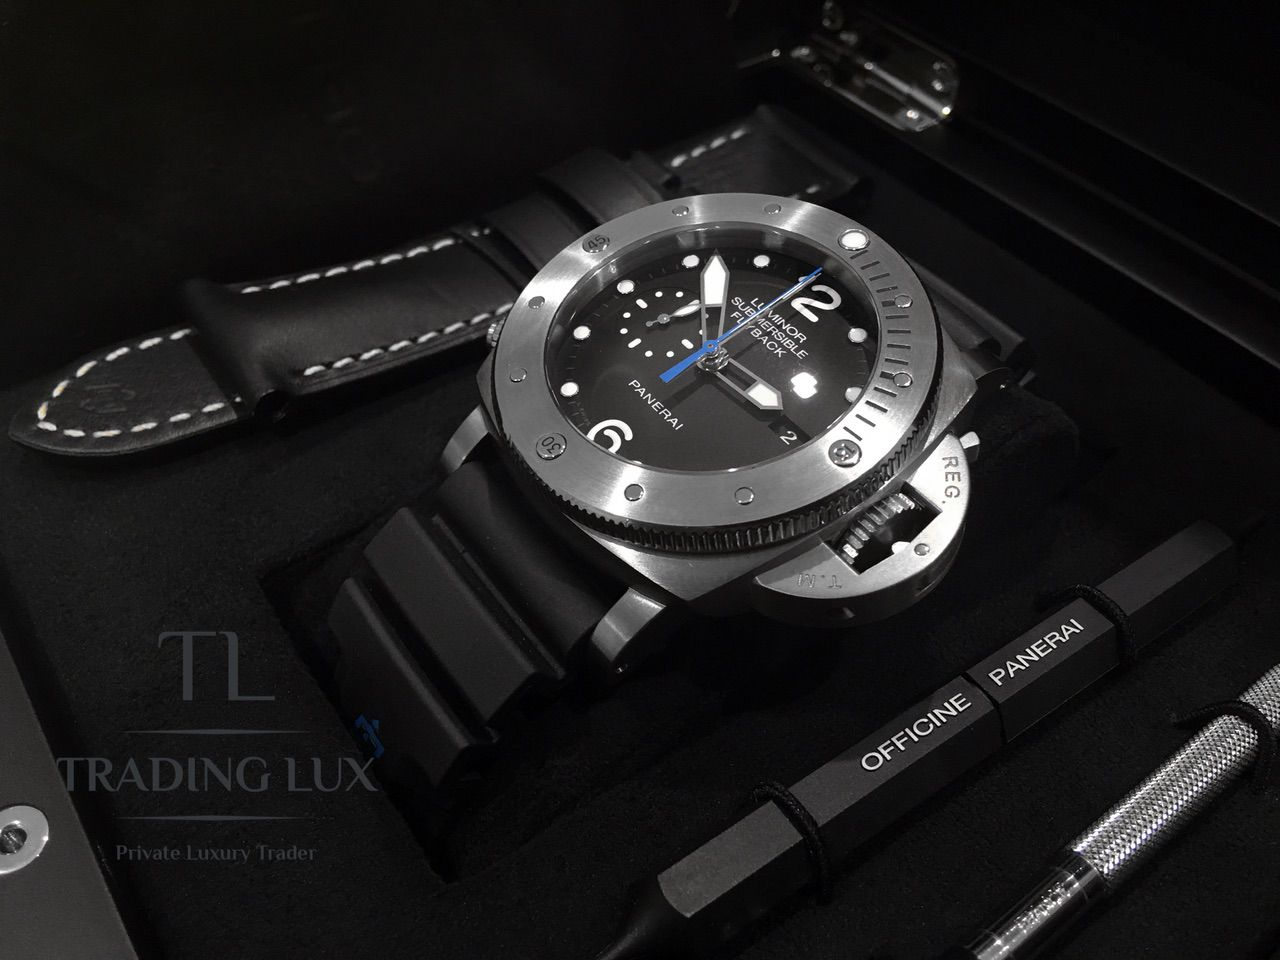 Panerai-Submersible-Chrono-PAM00614-0